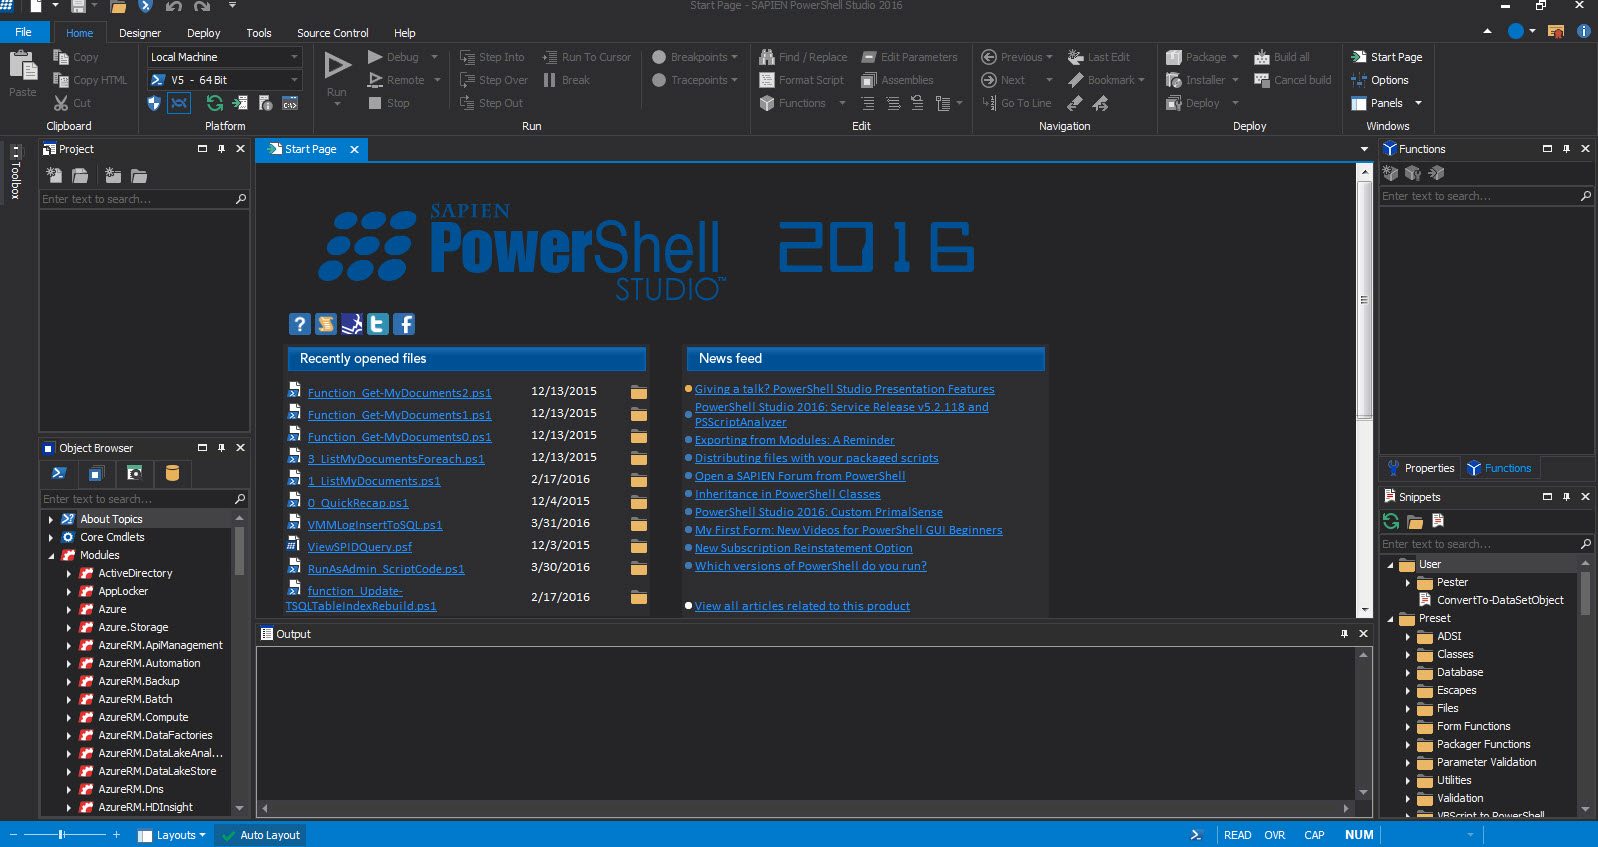 PowershellStudio